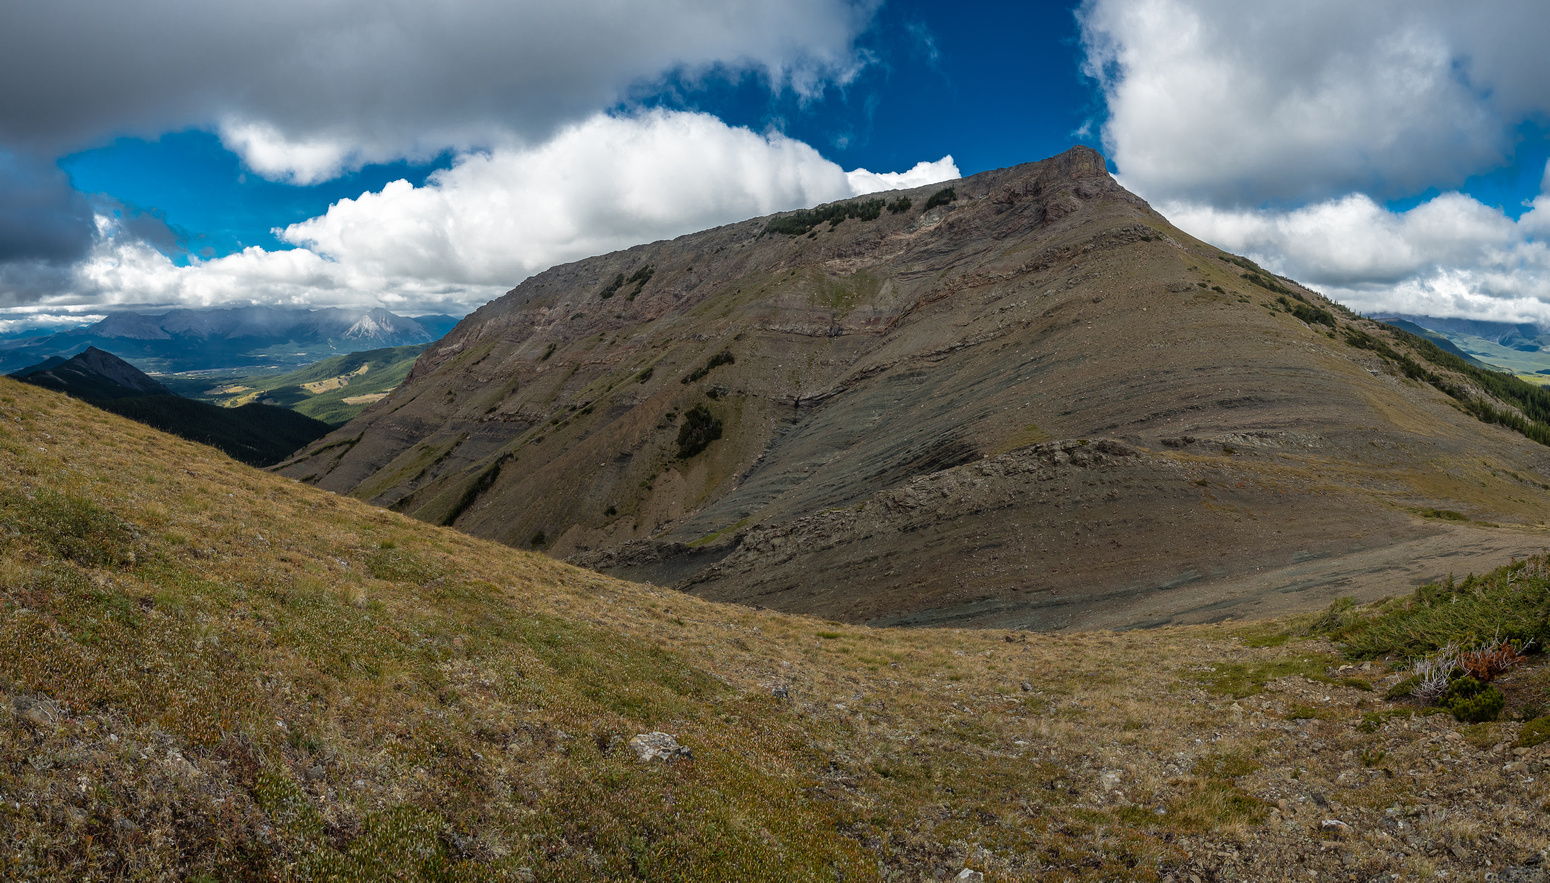 Starting down the easy west side of McGillivray Ridge, headed to the symmetrical form of Ma Butte.